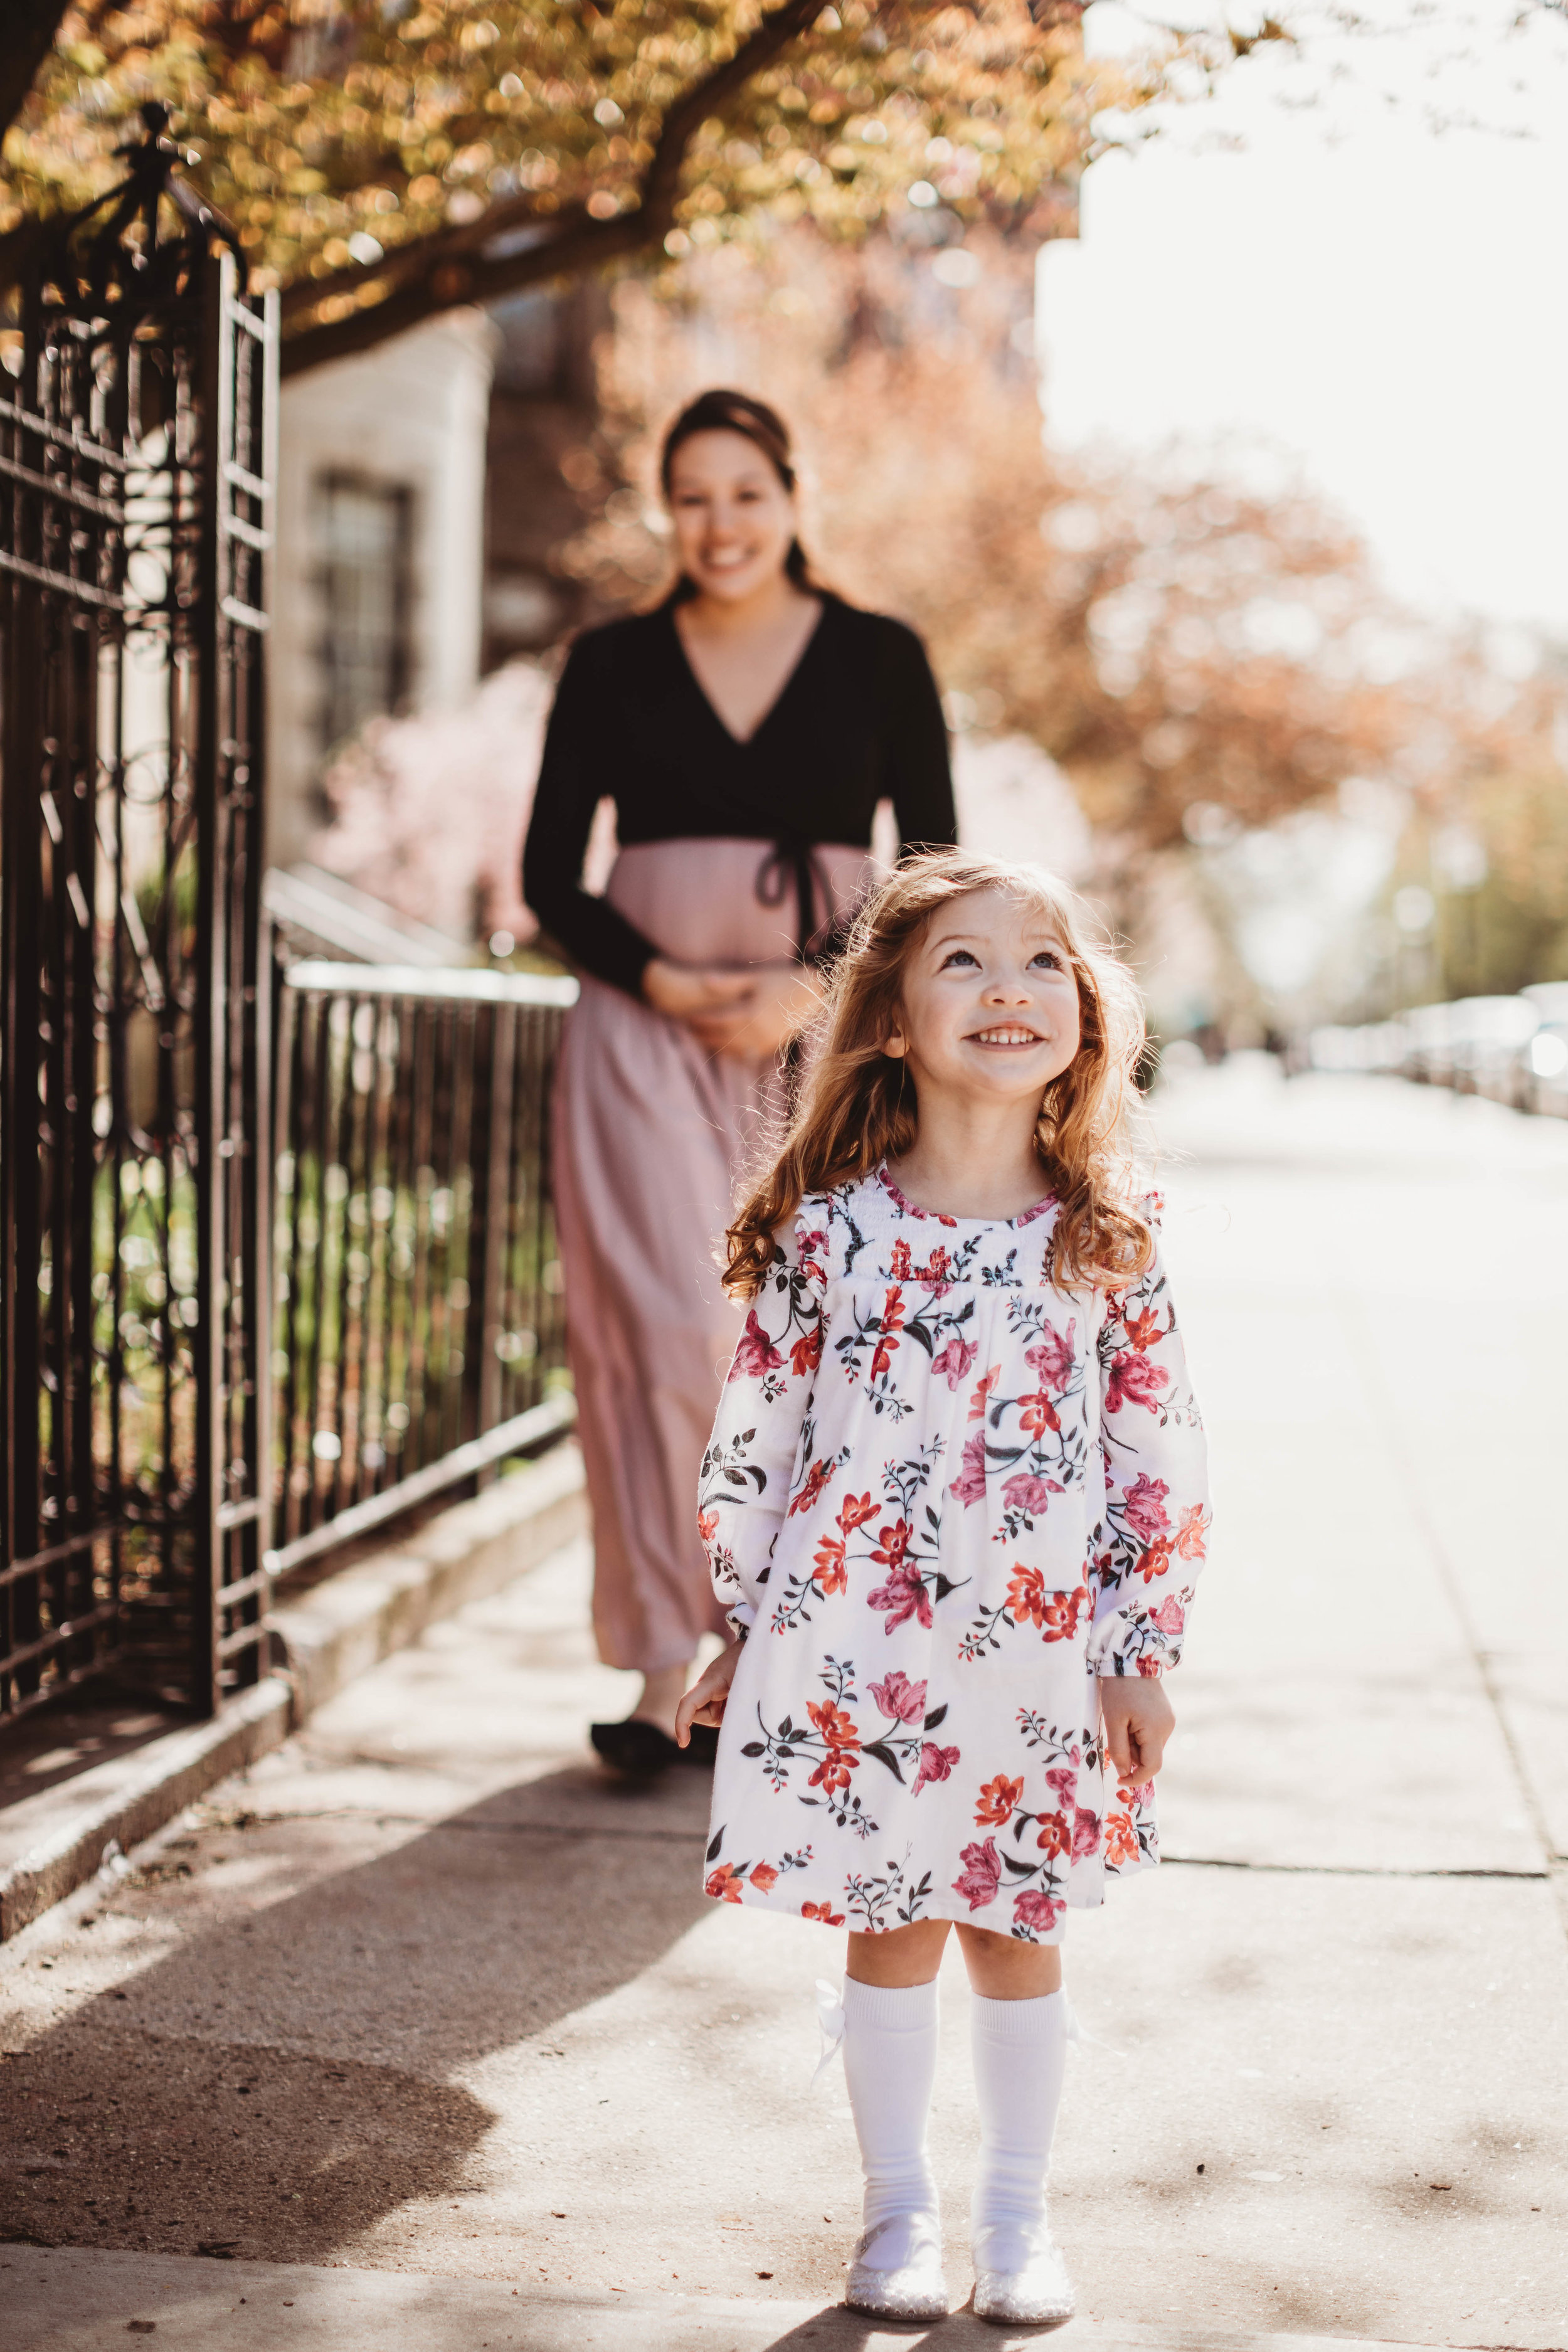 Cherry blossom adventure in Back Bay. Boston family photographer. New England lifestyle portraits.